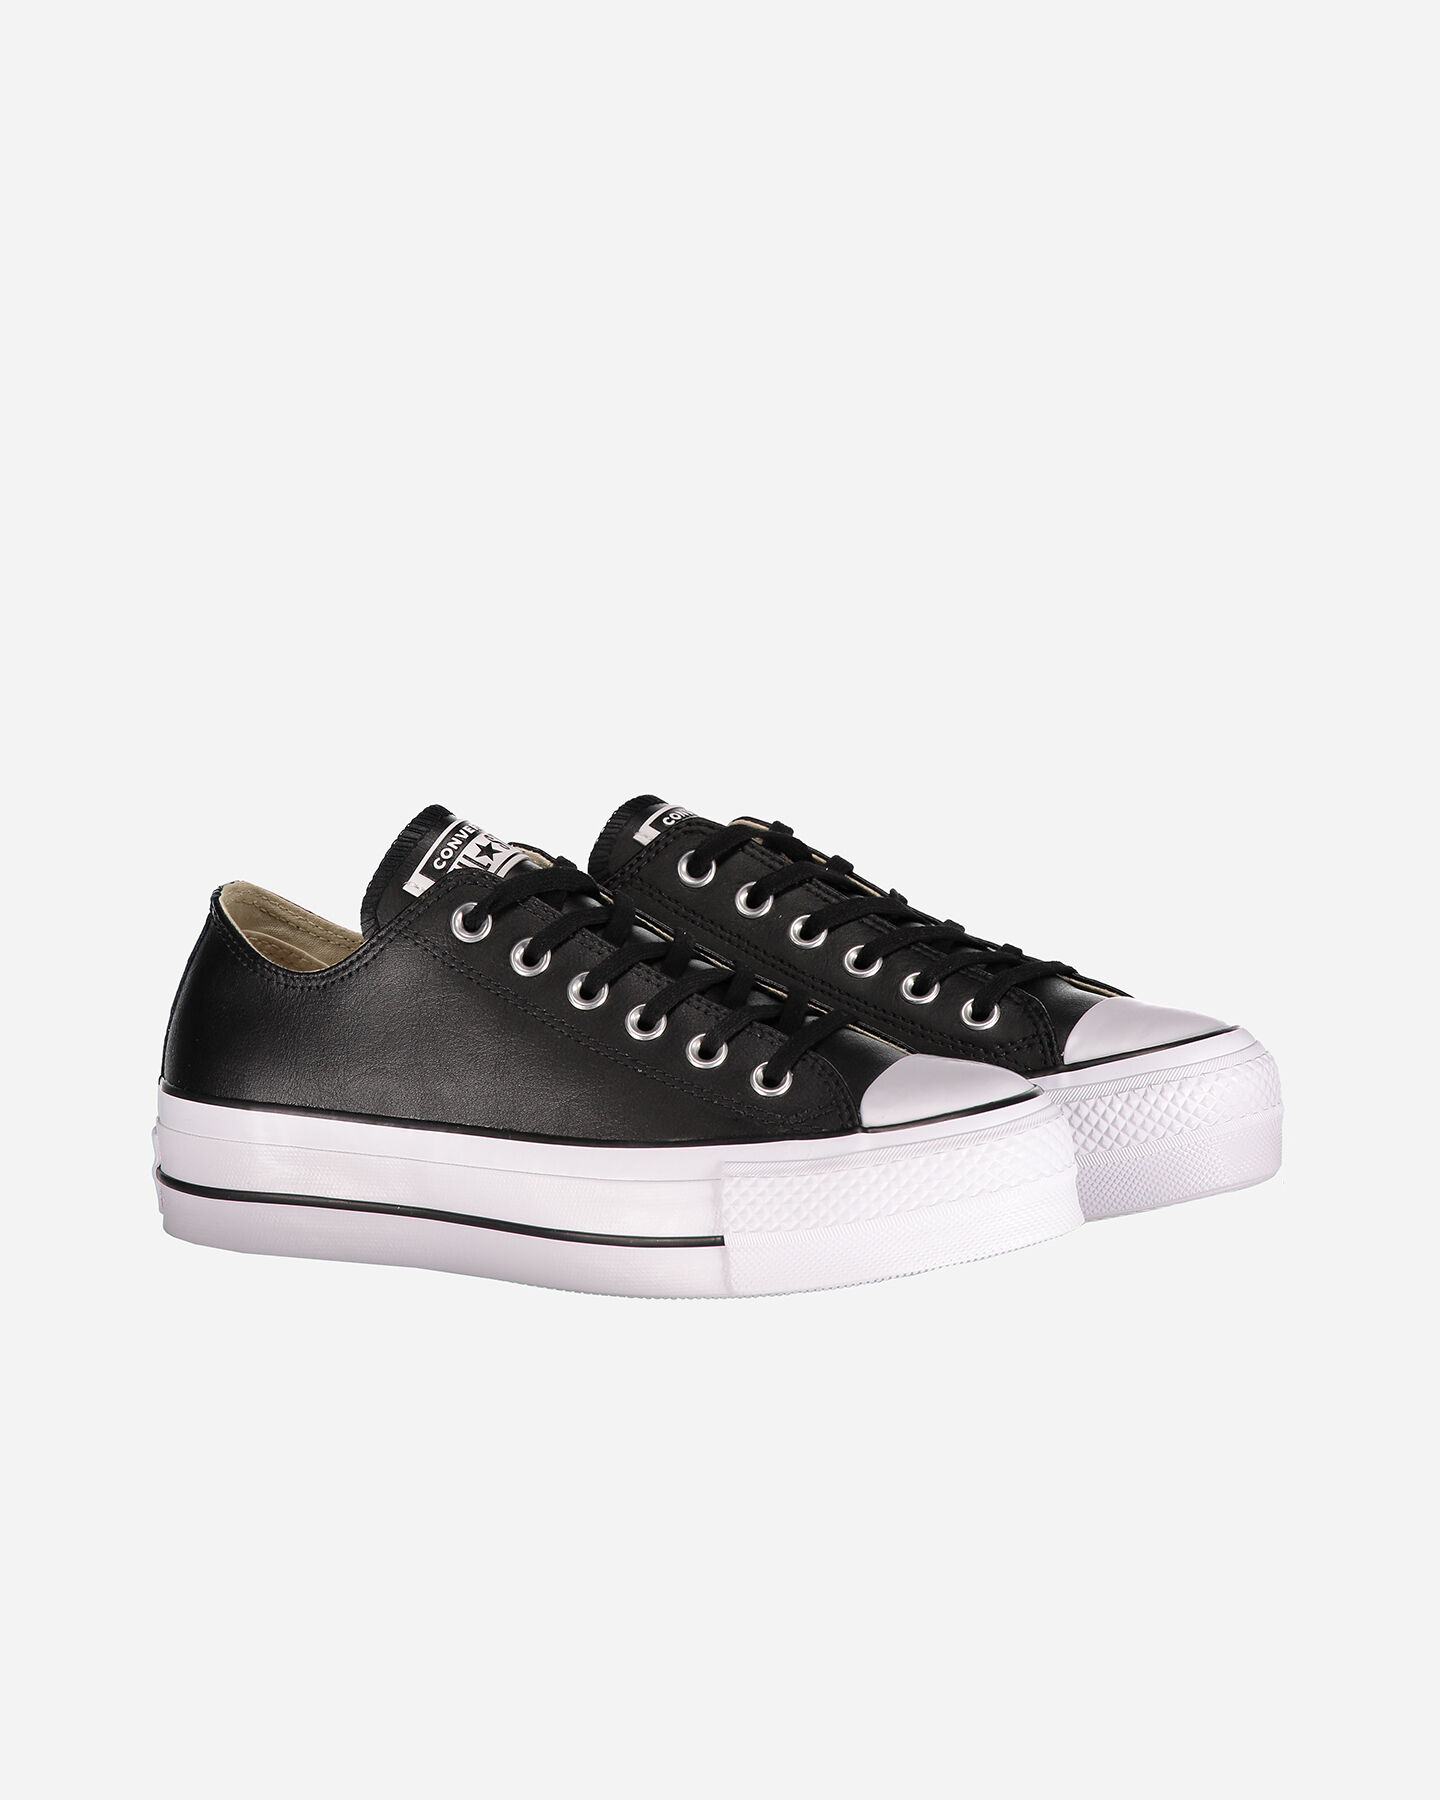 Scarpe sneakers CONVERSE ALL STAR PLATFORM LEATHER OX W S4051914 scatto 1